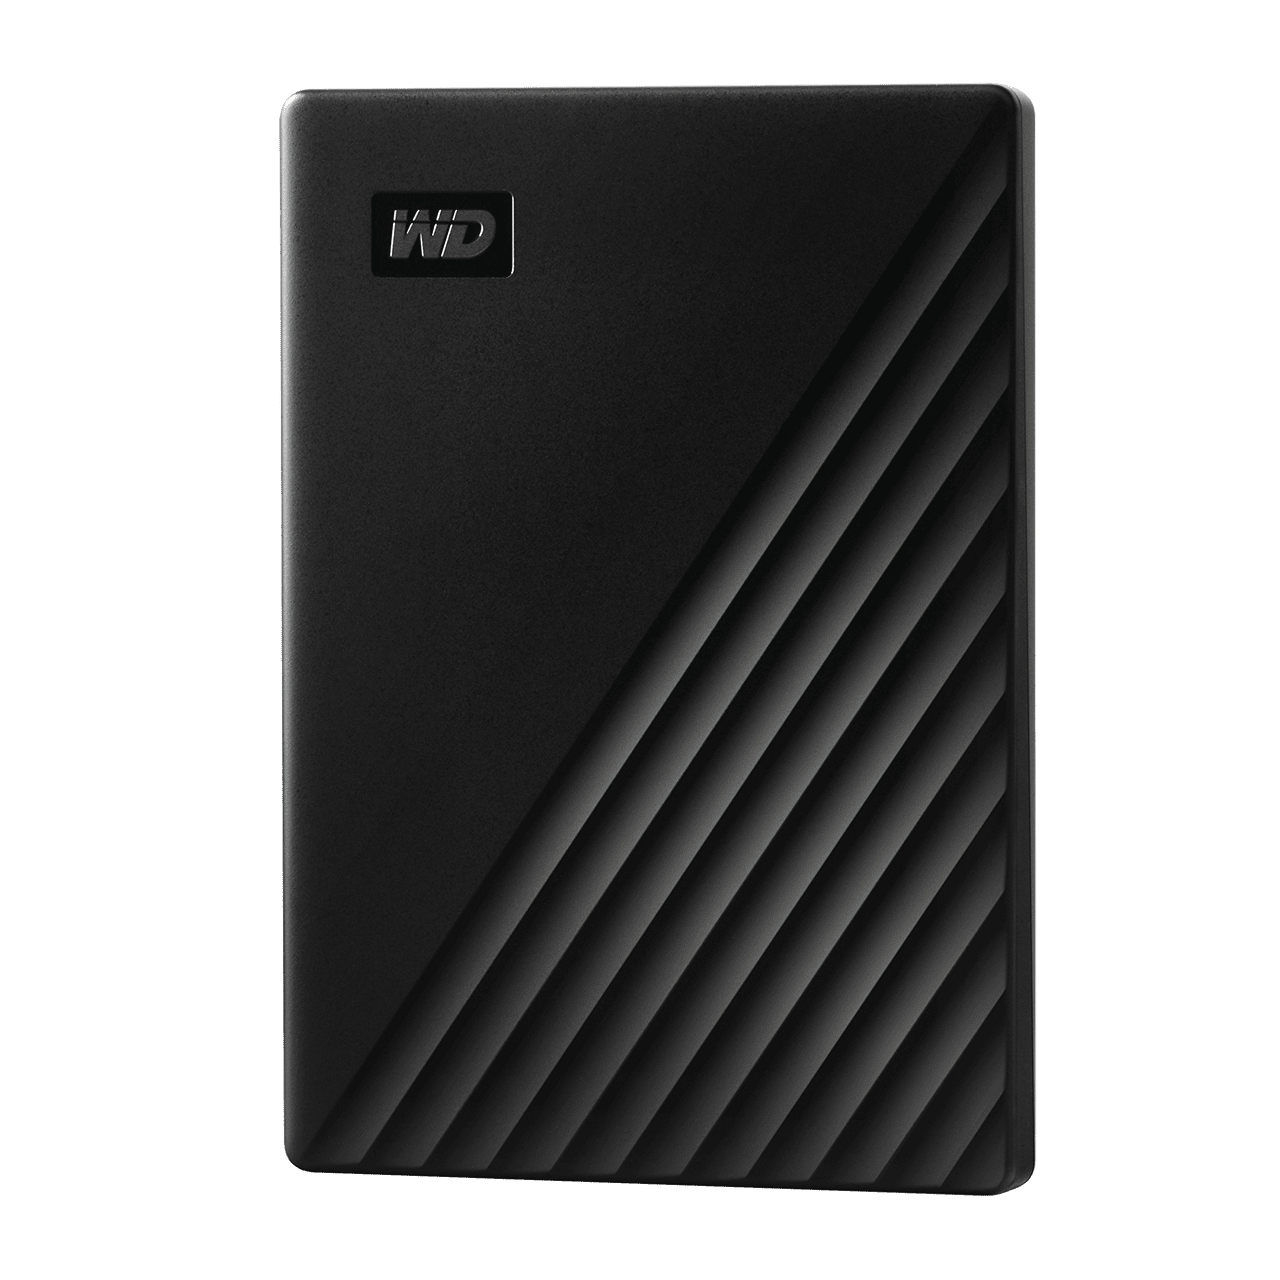 Фото - Внешний HDD WD My Passport 2Tb Black (WDBYVG0020BBK-WESN) внешний hdd wd elements portable 1tb black wdbuzg0010bbk wesn